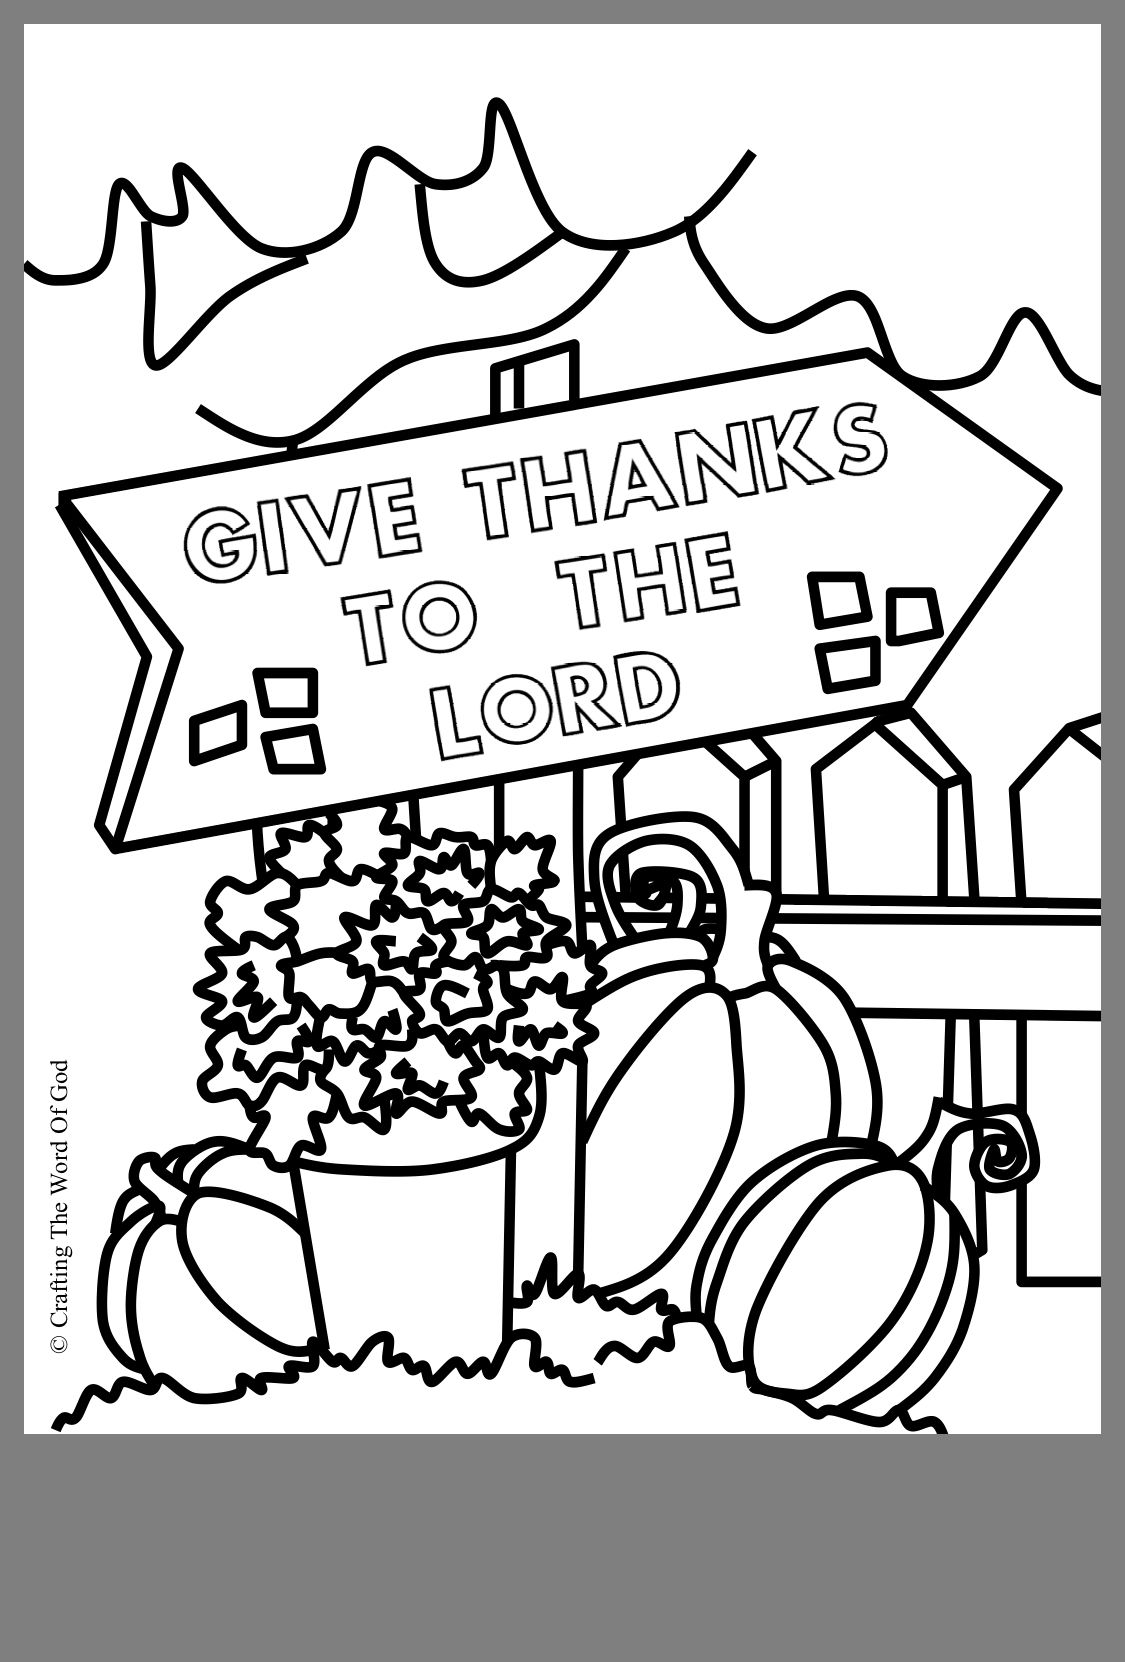 sunday school coloring pages sunday school free printable coloring pages coloring home school coloring pages sunday